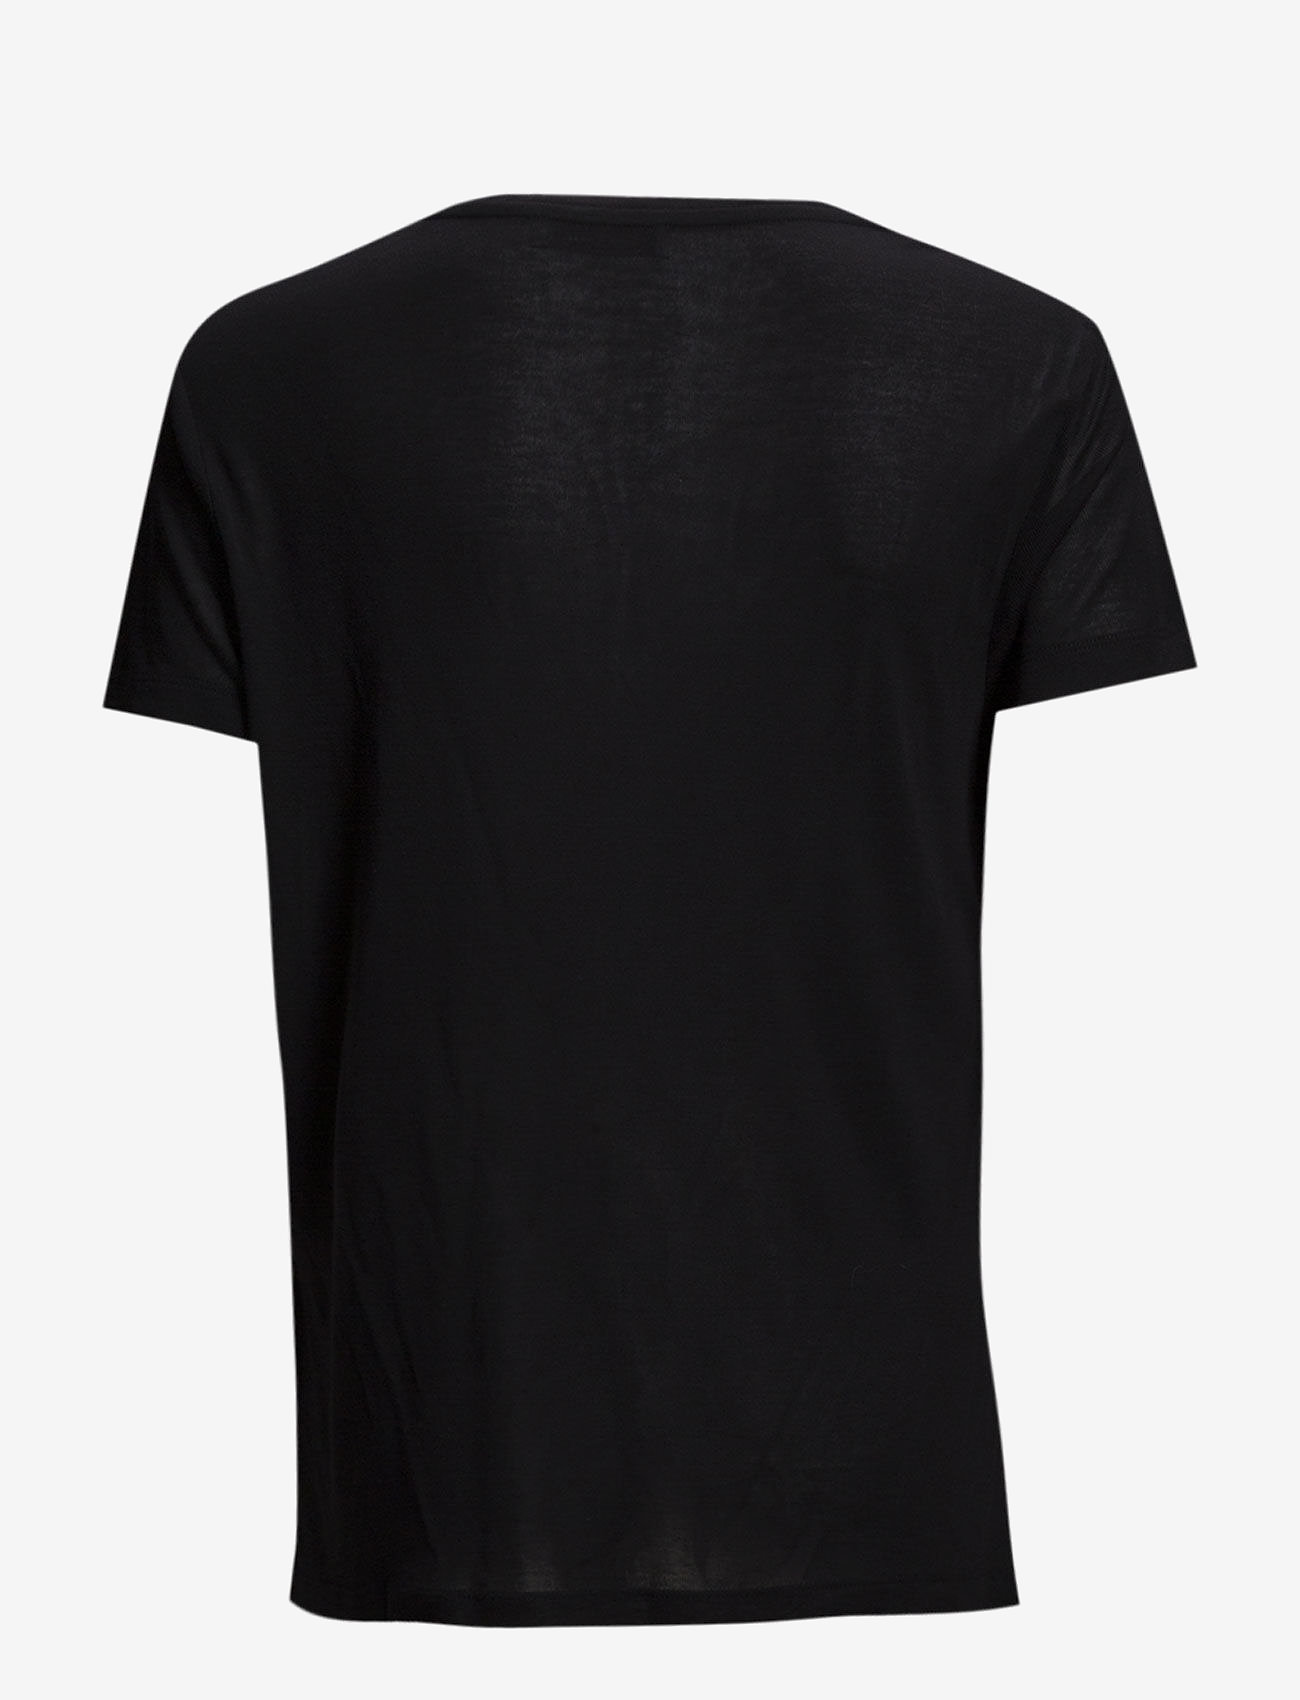 Samsøe Samsøe - Siff v-neck 6136 - basic t-shirts - black - 1